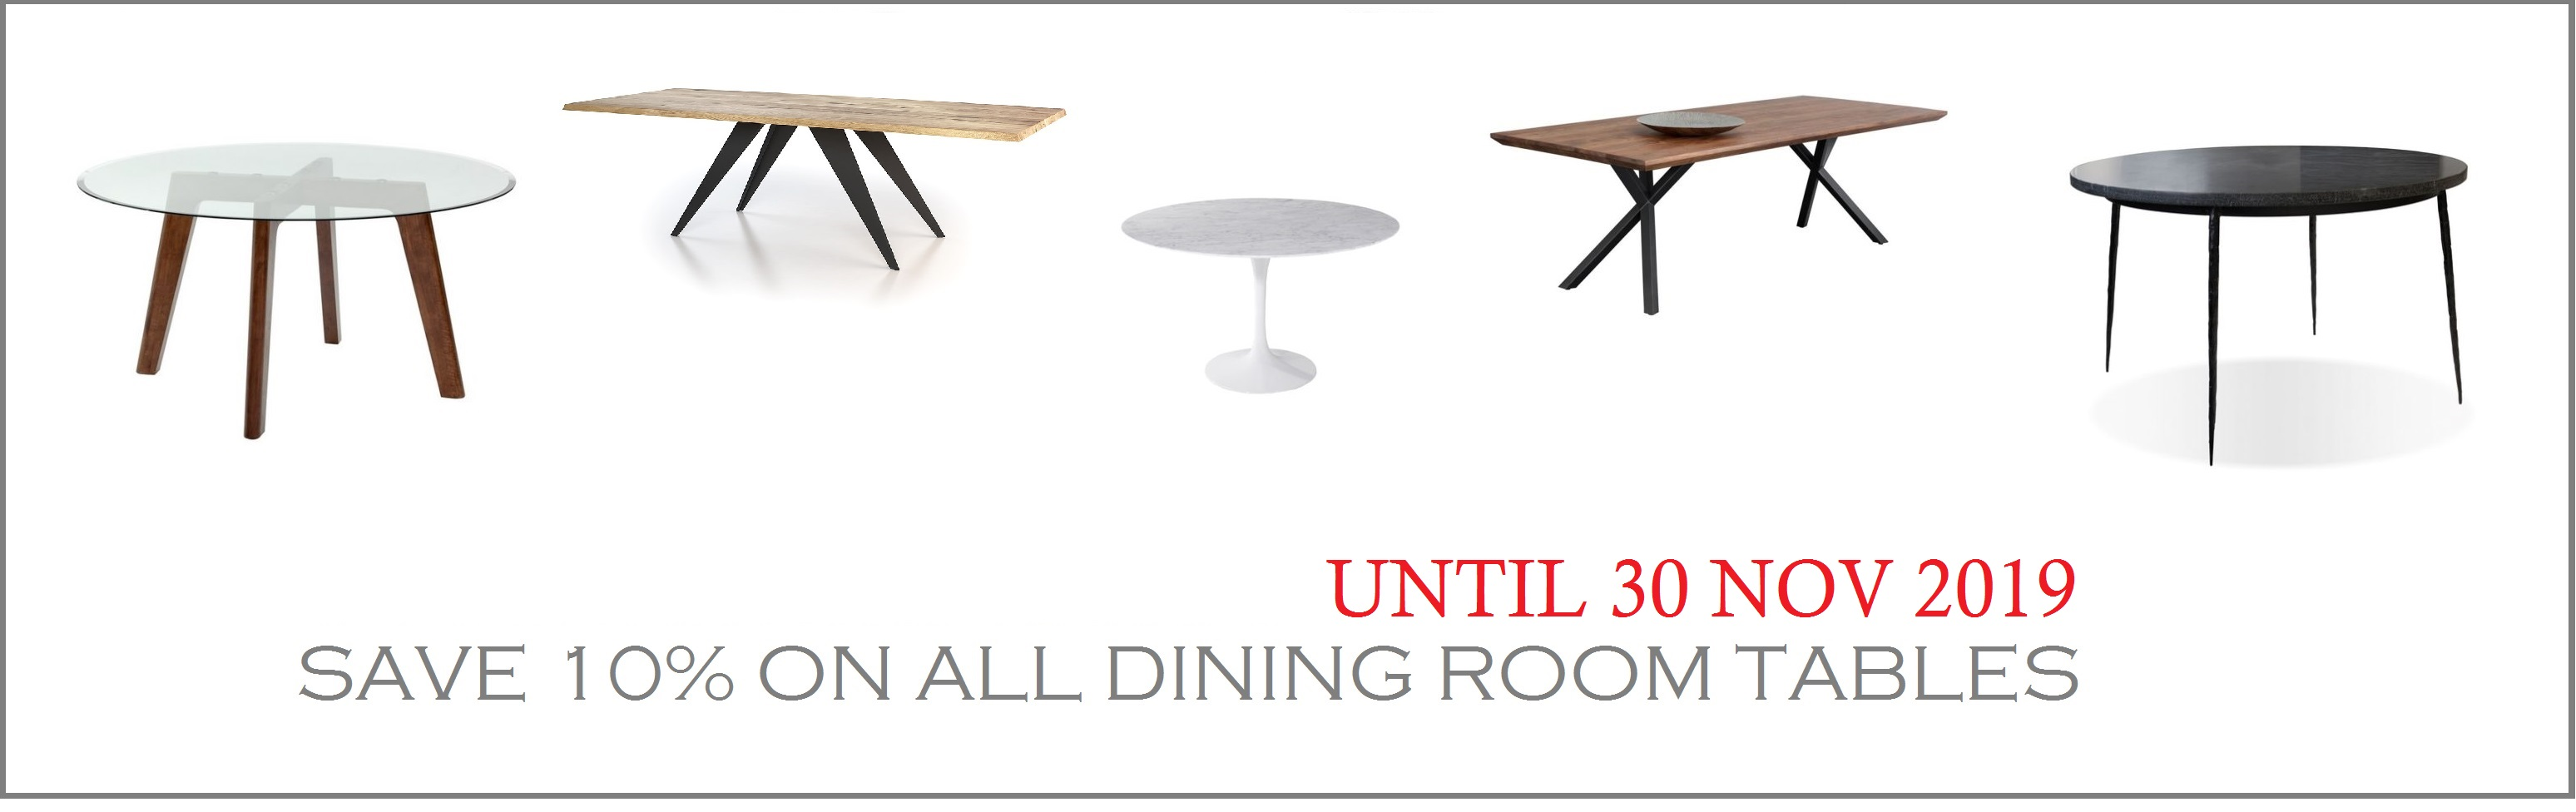 dining-TABLE-event-OCTOBER_ENGLISH